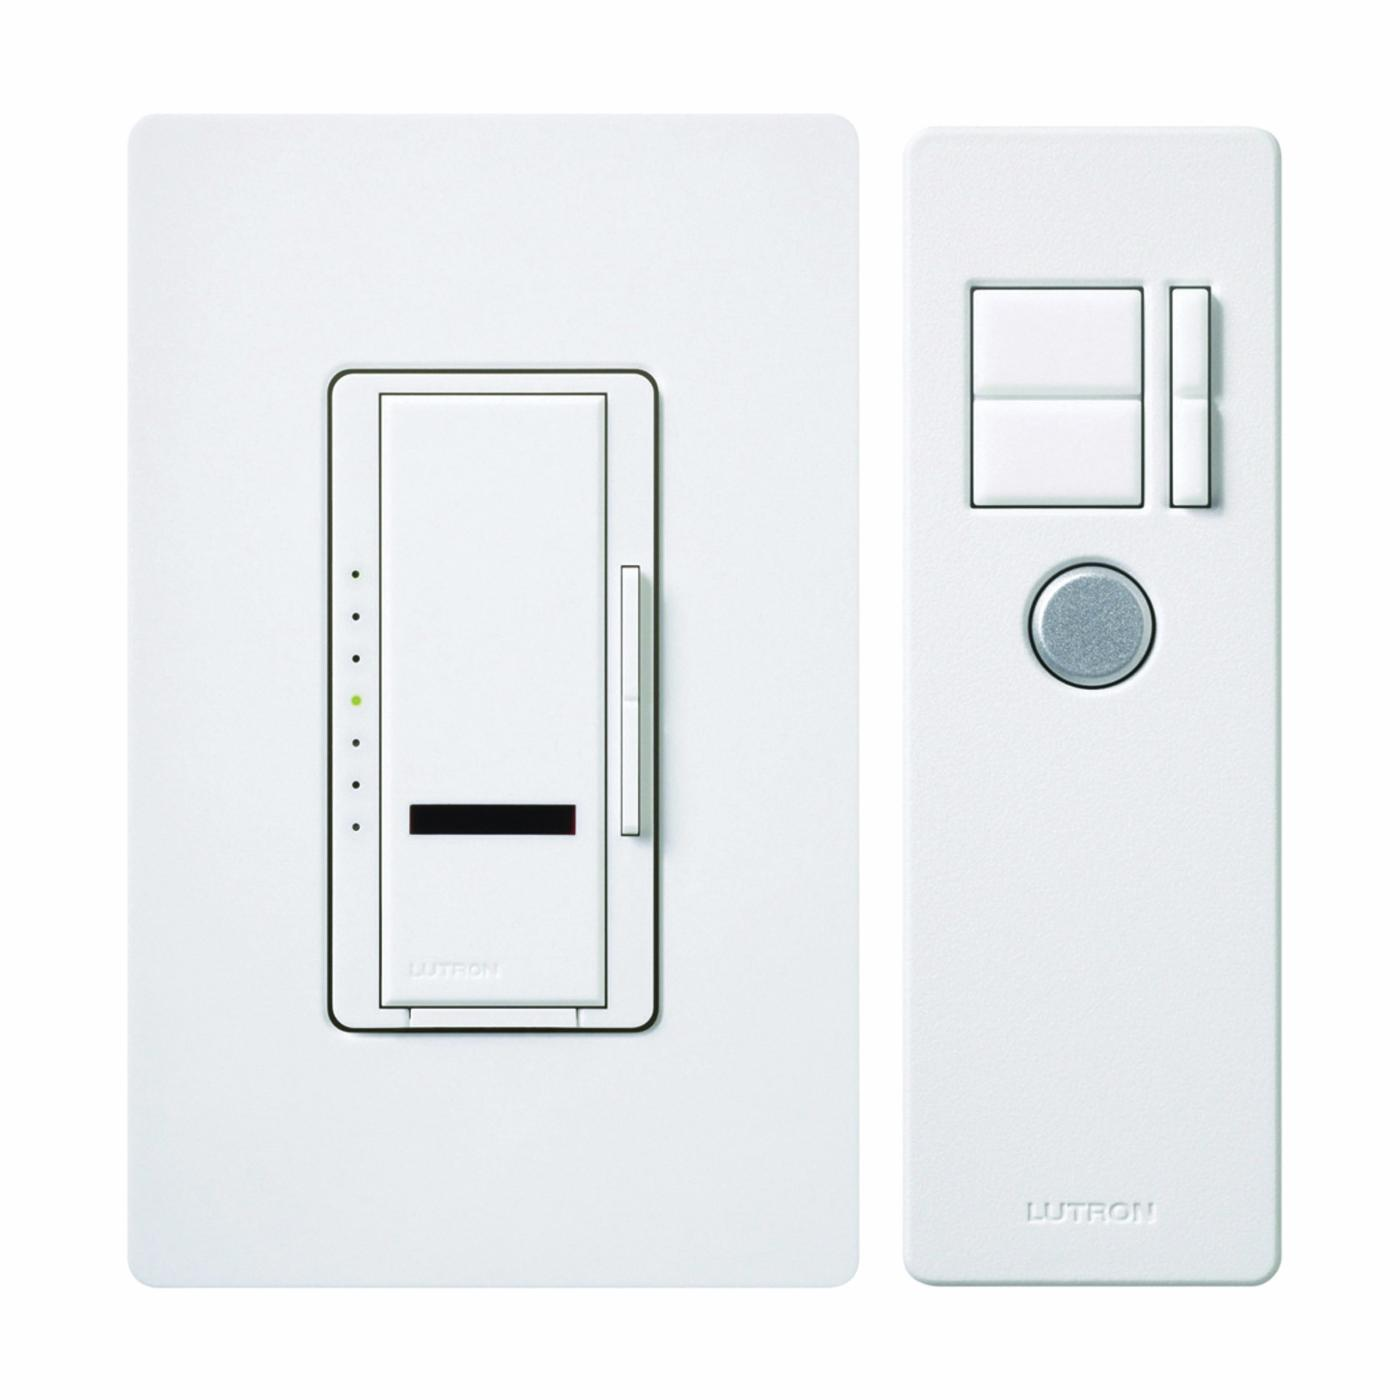 LUTRON MIR-600THW-WH